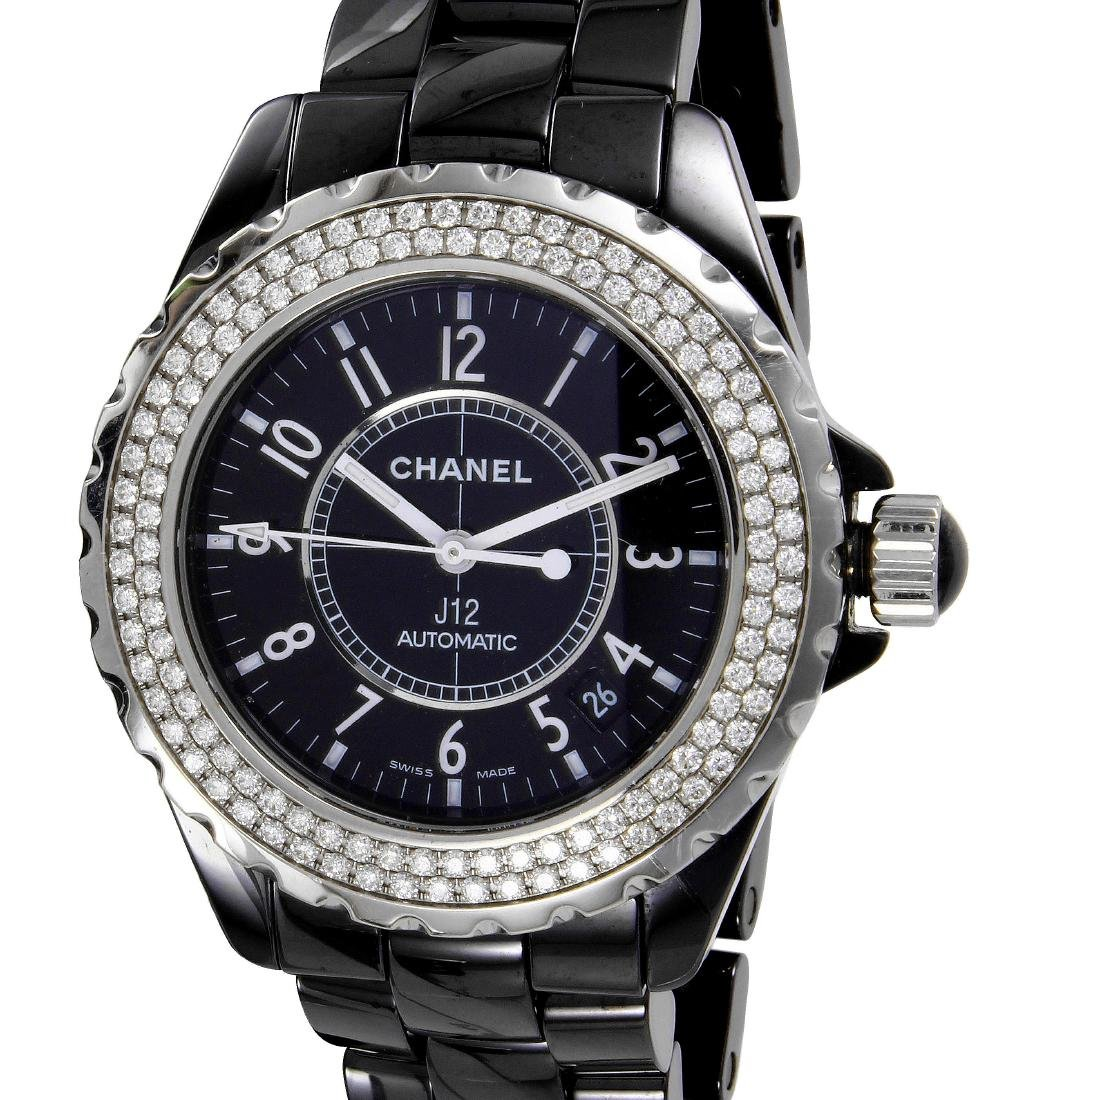 Chanel J12 Automatic Ceramic Diamond Watch